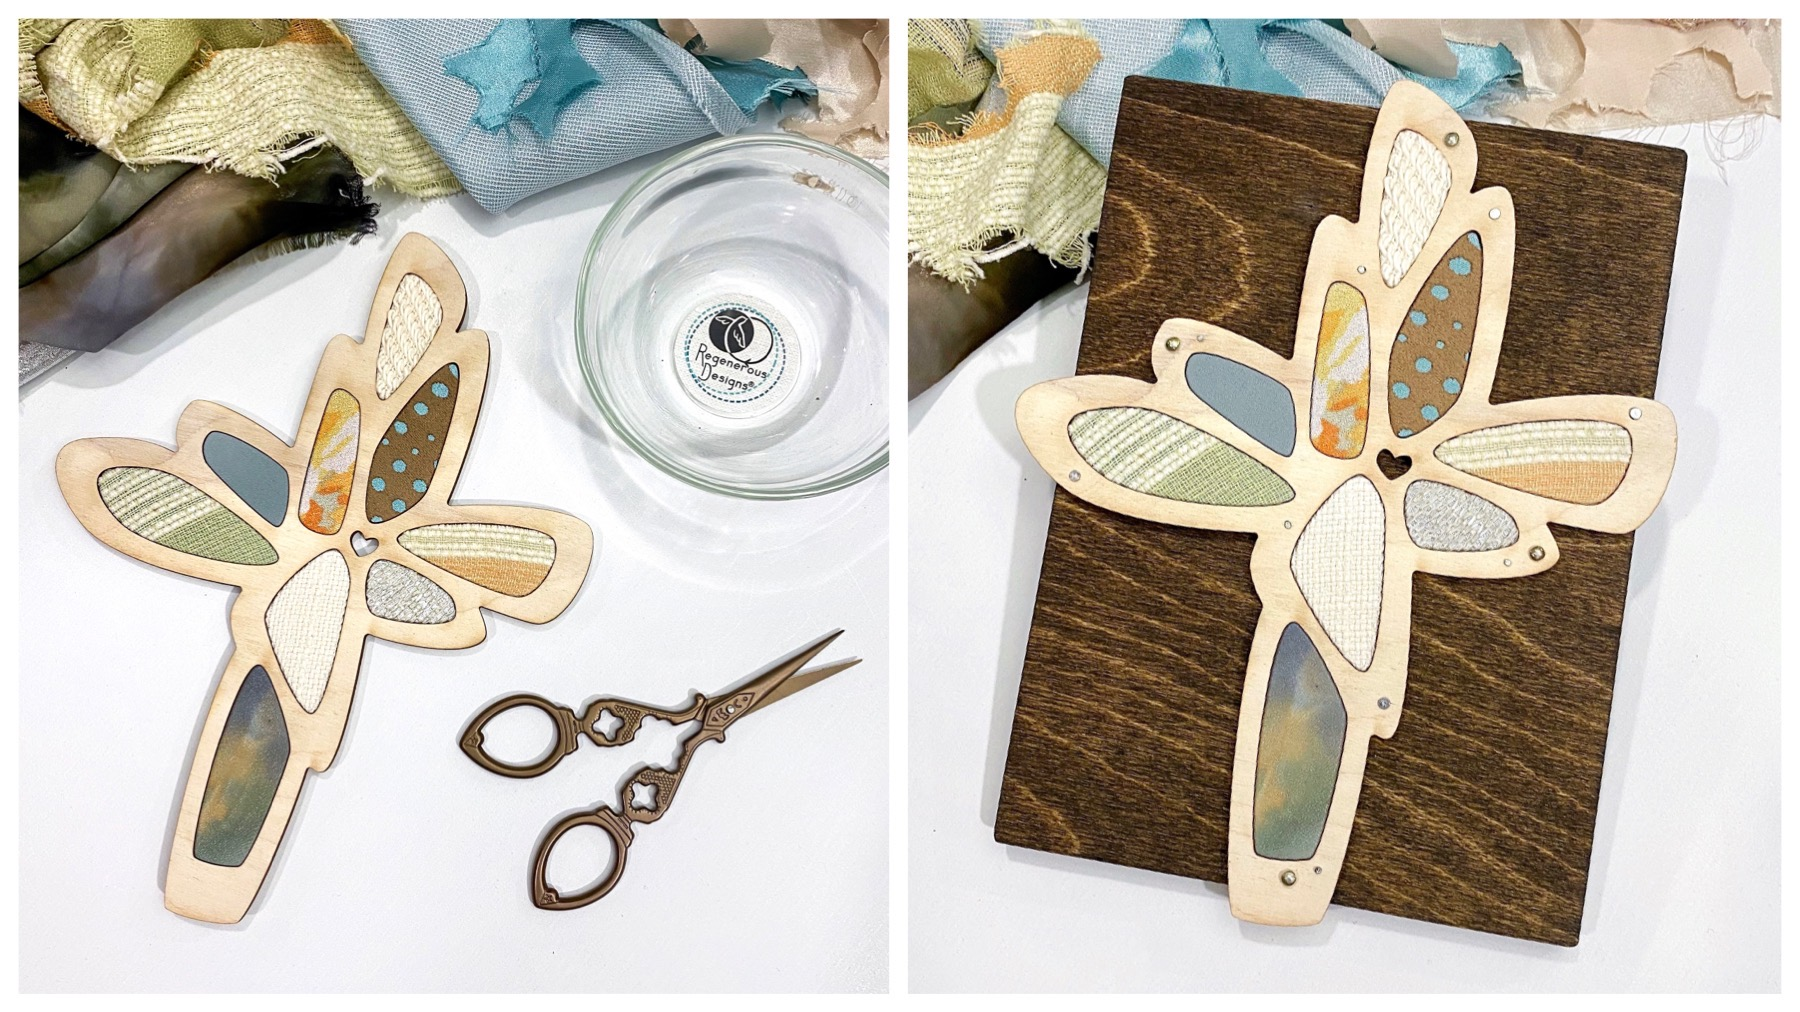 DIY art kit craft project - textile and wood cross